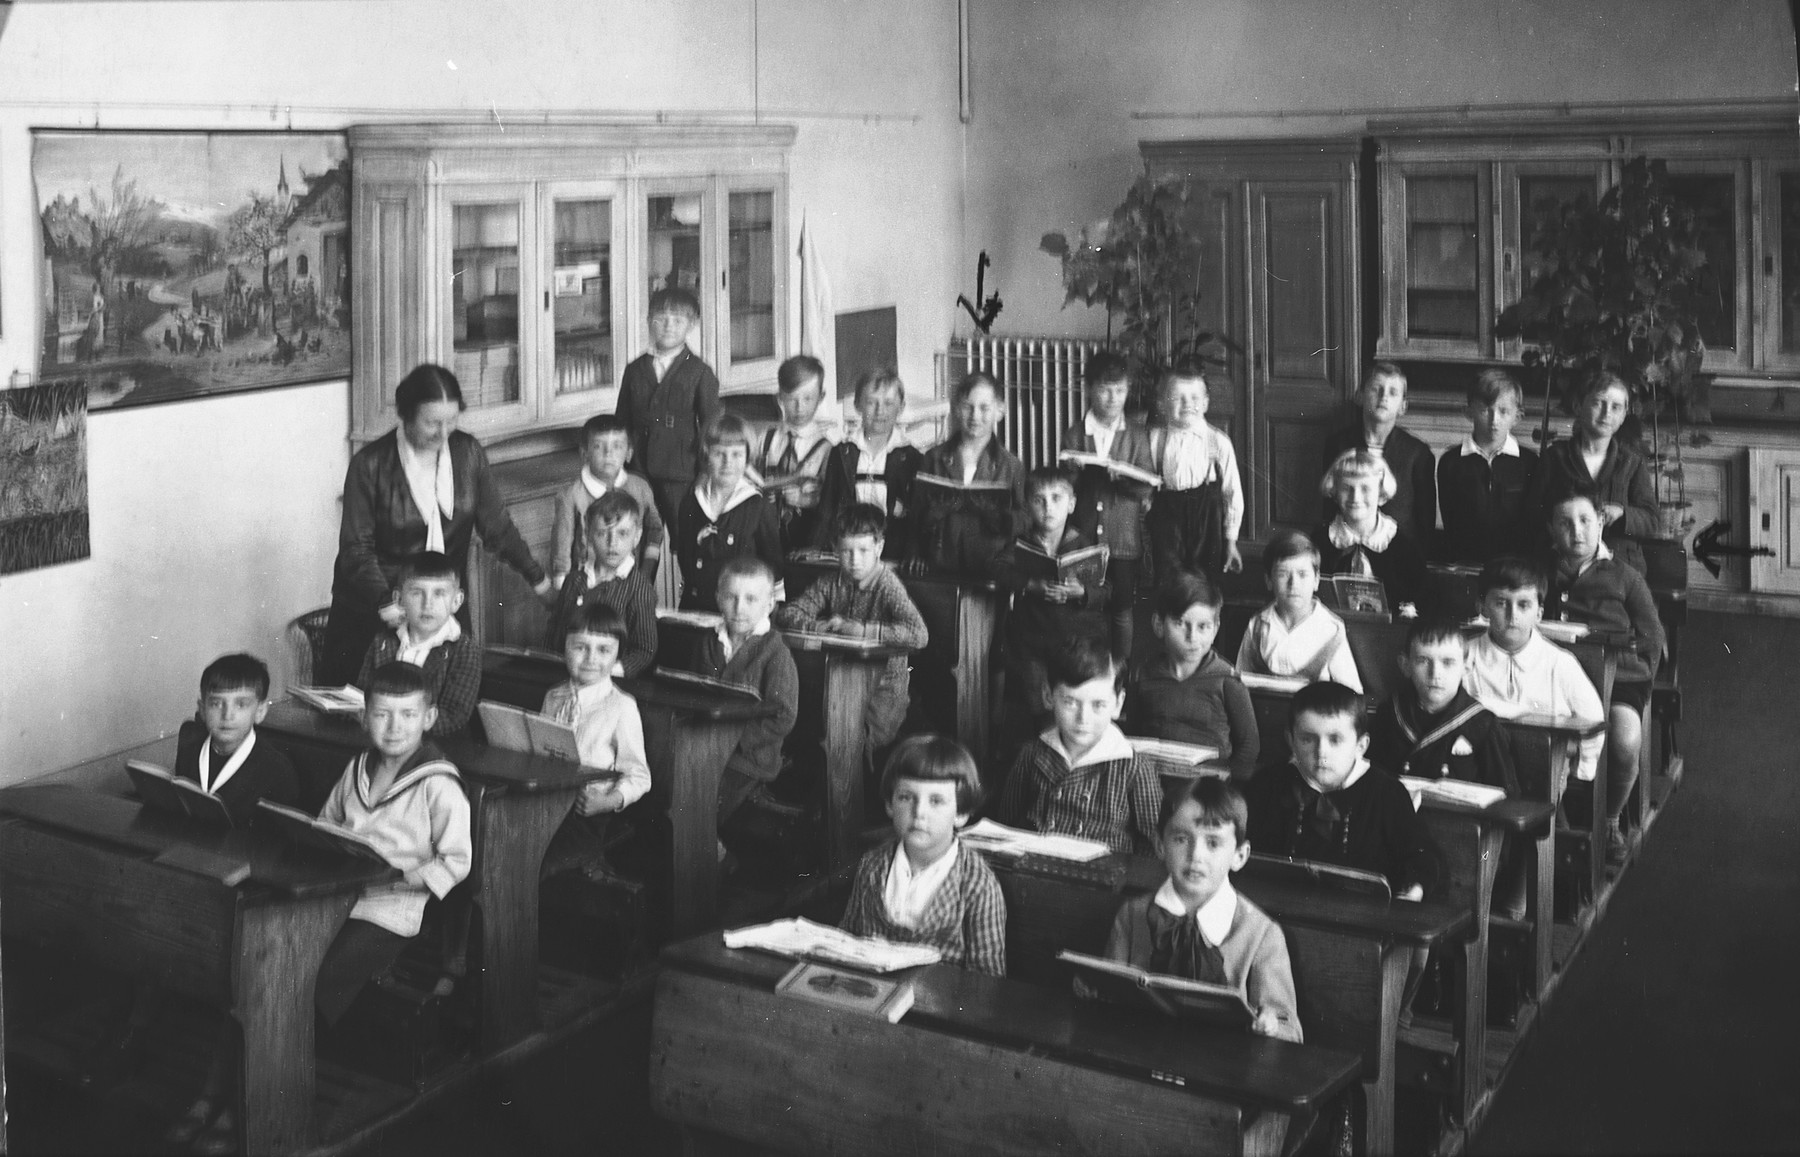 Pupils in the first grade sit in their classroom at a public school in Prague.  Among the students are several Jewish children.  Among those pictured are Edgar Krasa (back row, left) and Max Widder (second to last row, right side).